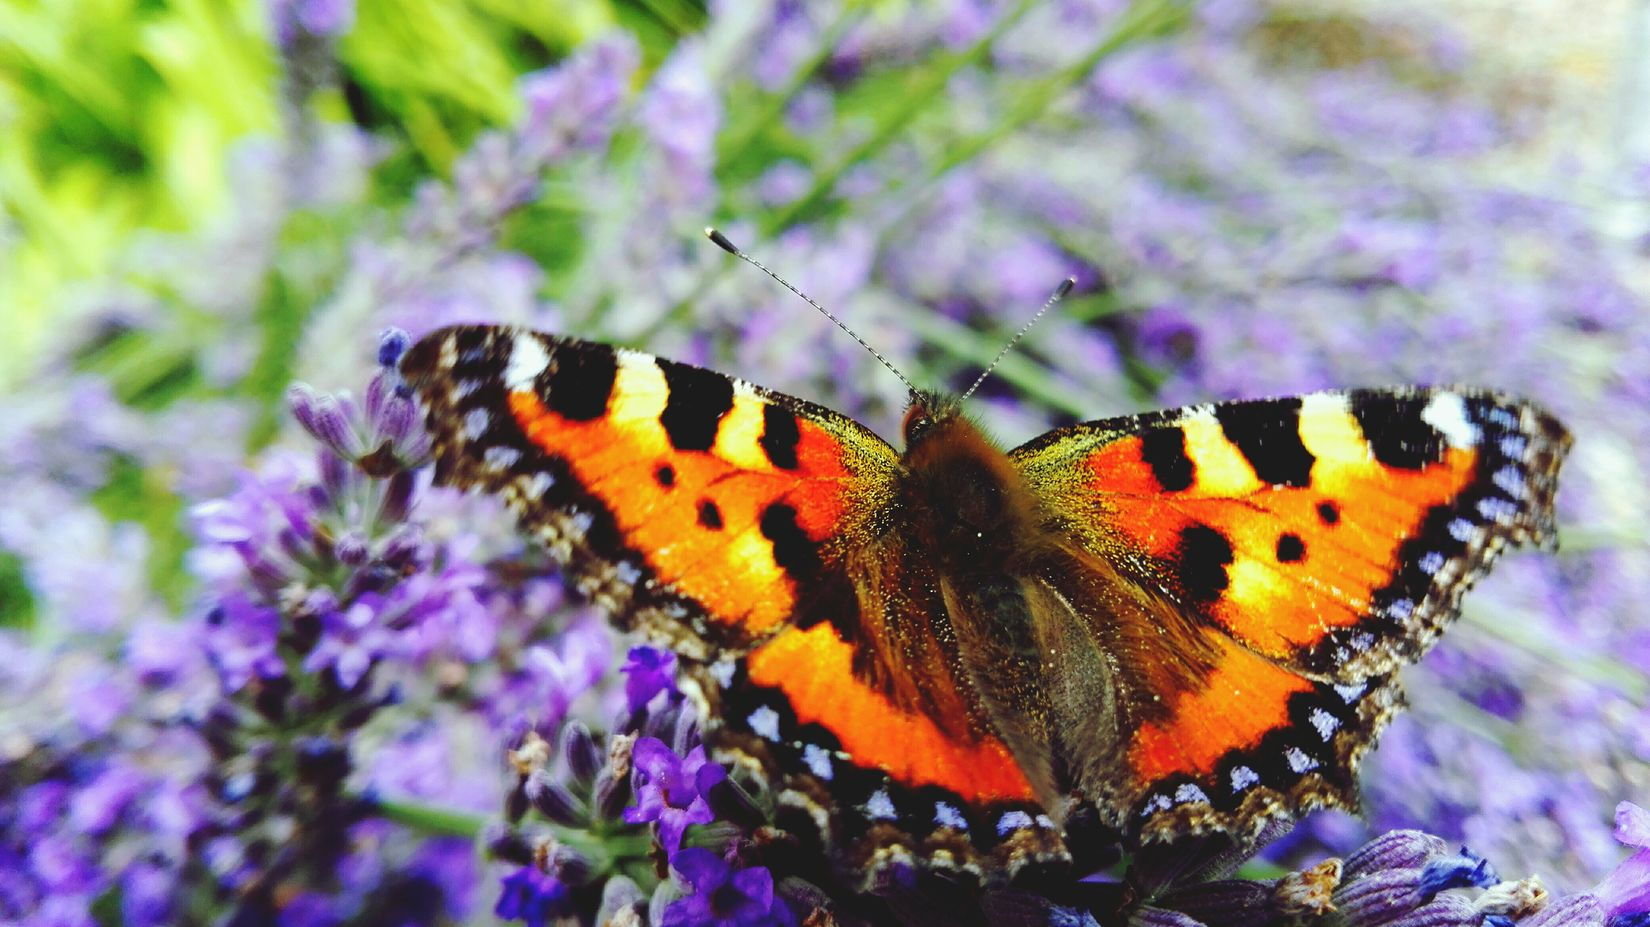 Taking Photos Check This Out Summer Showcase July Summer 2016 See What I See July 2016 Bokeh In My Garden Garden Lavender Butterfly Butterfly Collection Butterfly ❤ Feeling Summer The Places I've Been Today Summertime